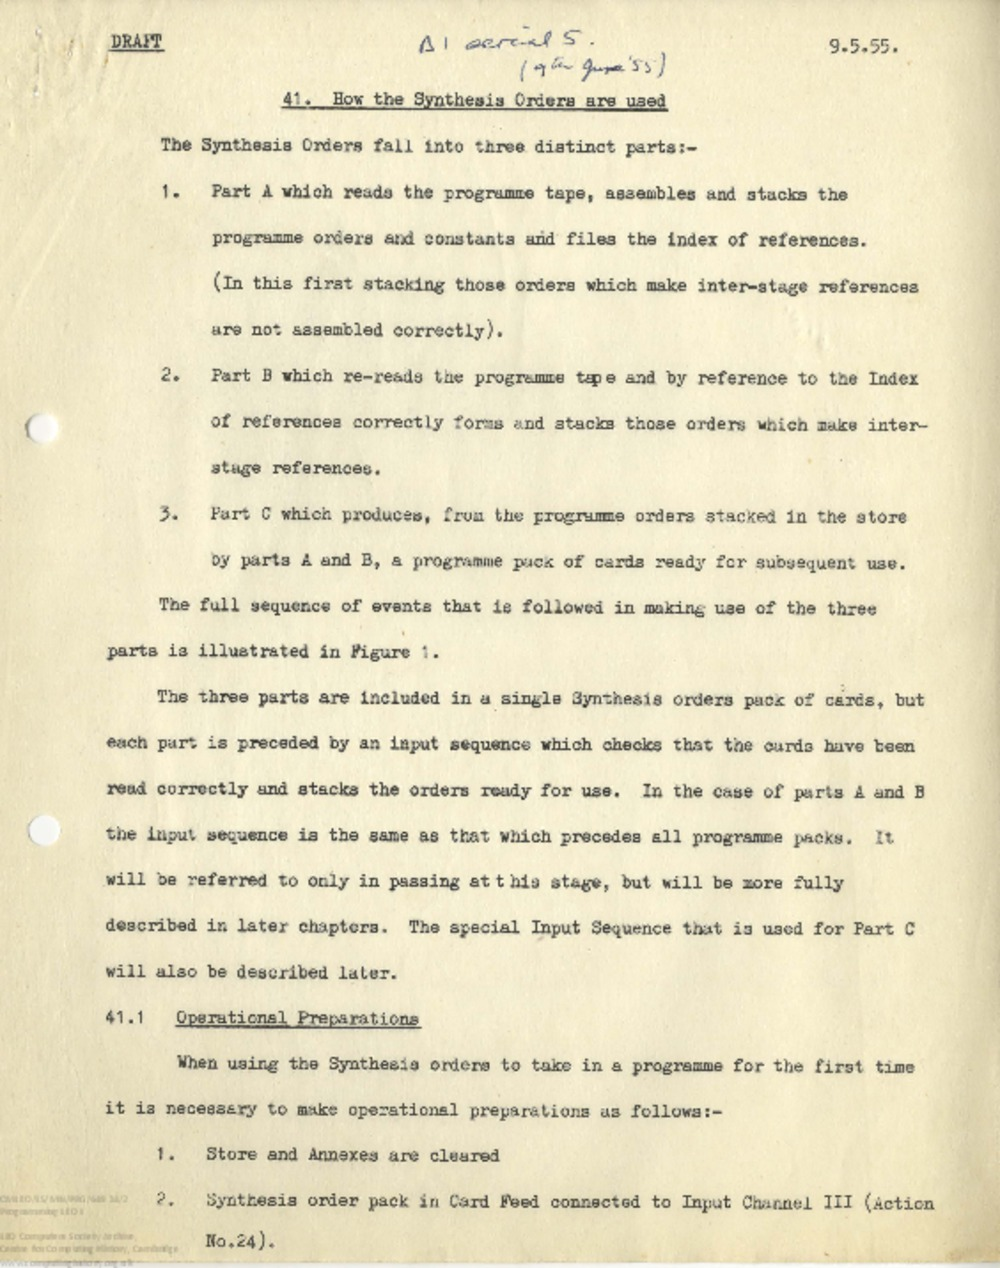 Article: 65265 Programming LEO I: Draft: 41. How the Synthesis Orders are Used, 9th May 1955